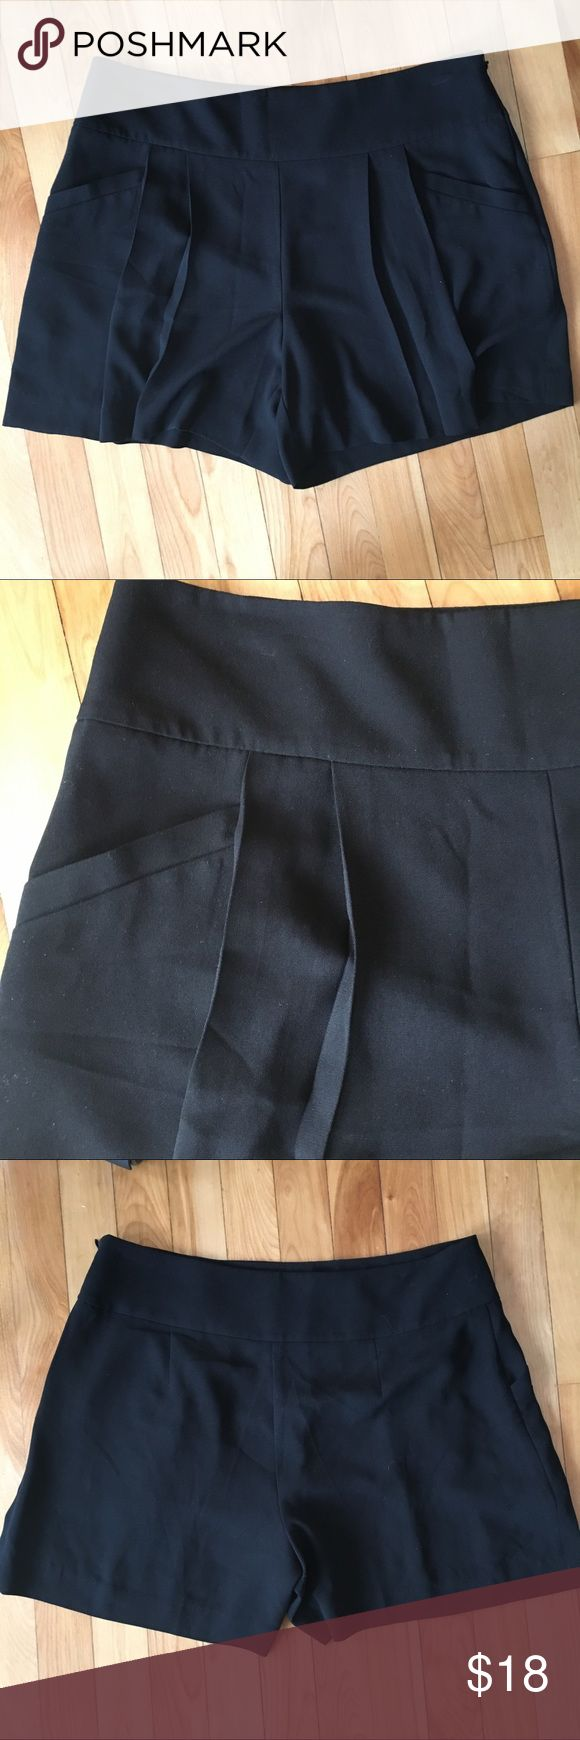 """LOFT Side Zip Mid-rise Shorts 5"""" Inseam 8 Pleated with pockets. Side zipper. 100% polyester. Great condition. Unlined. Flowy open leg. Approx 10"""" rise. LOFT Shorts"""